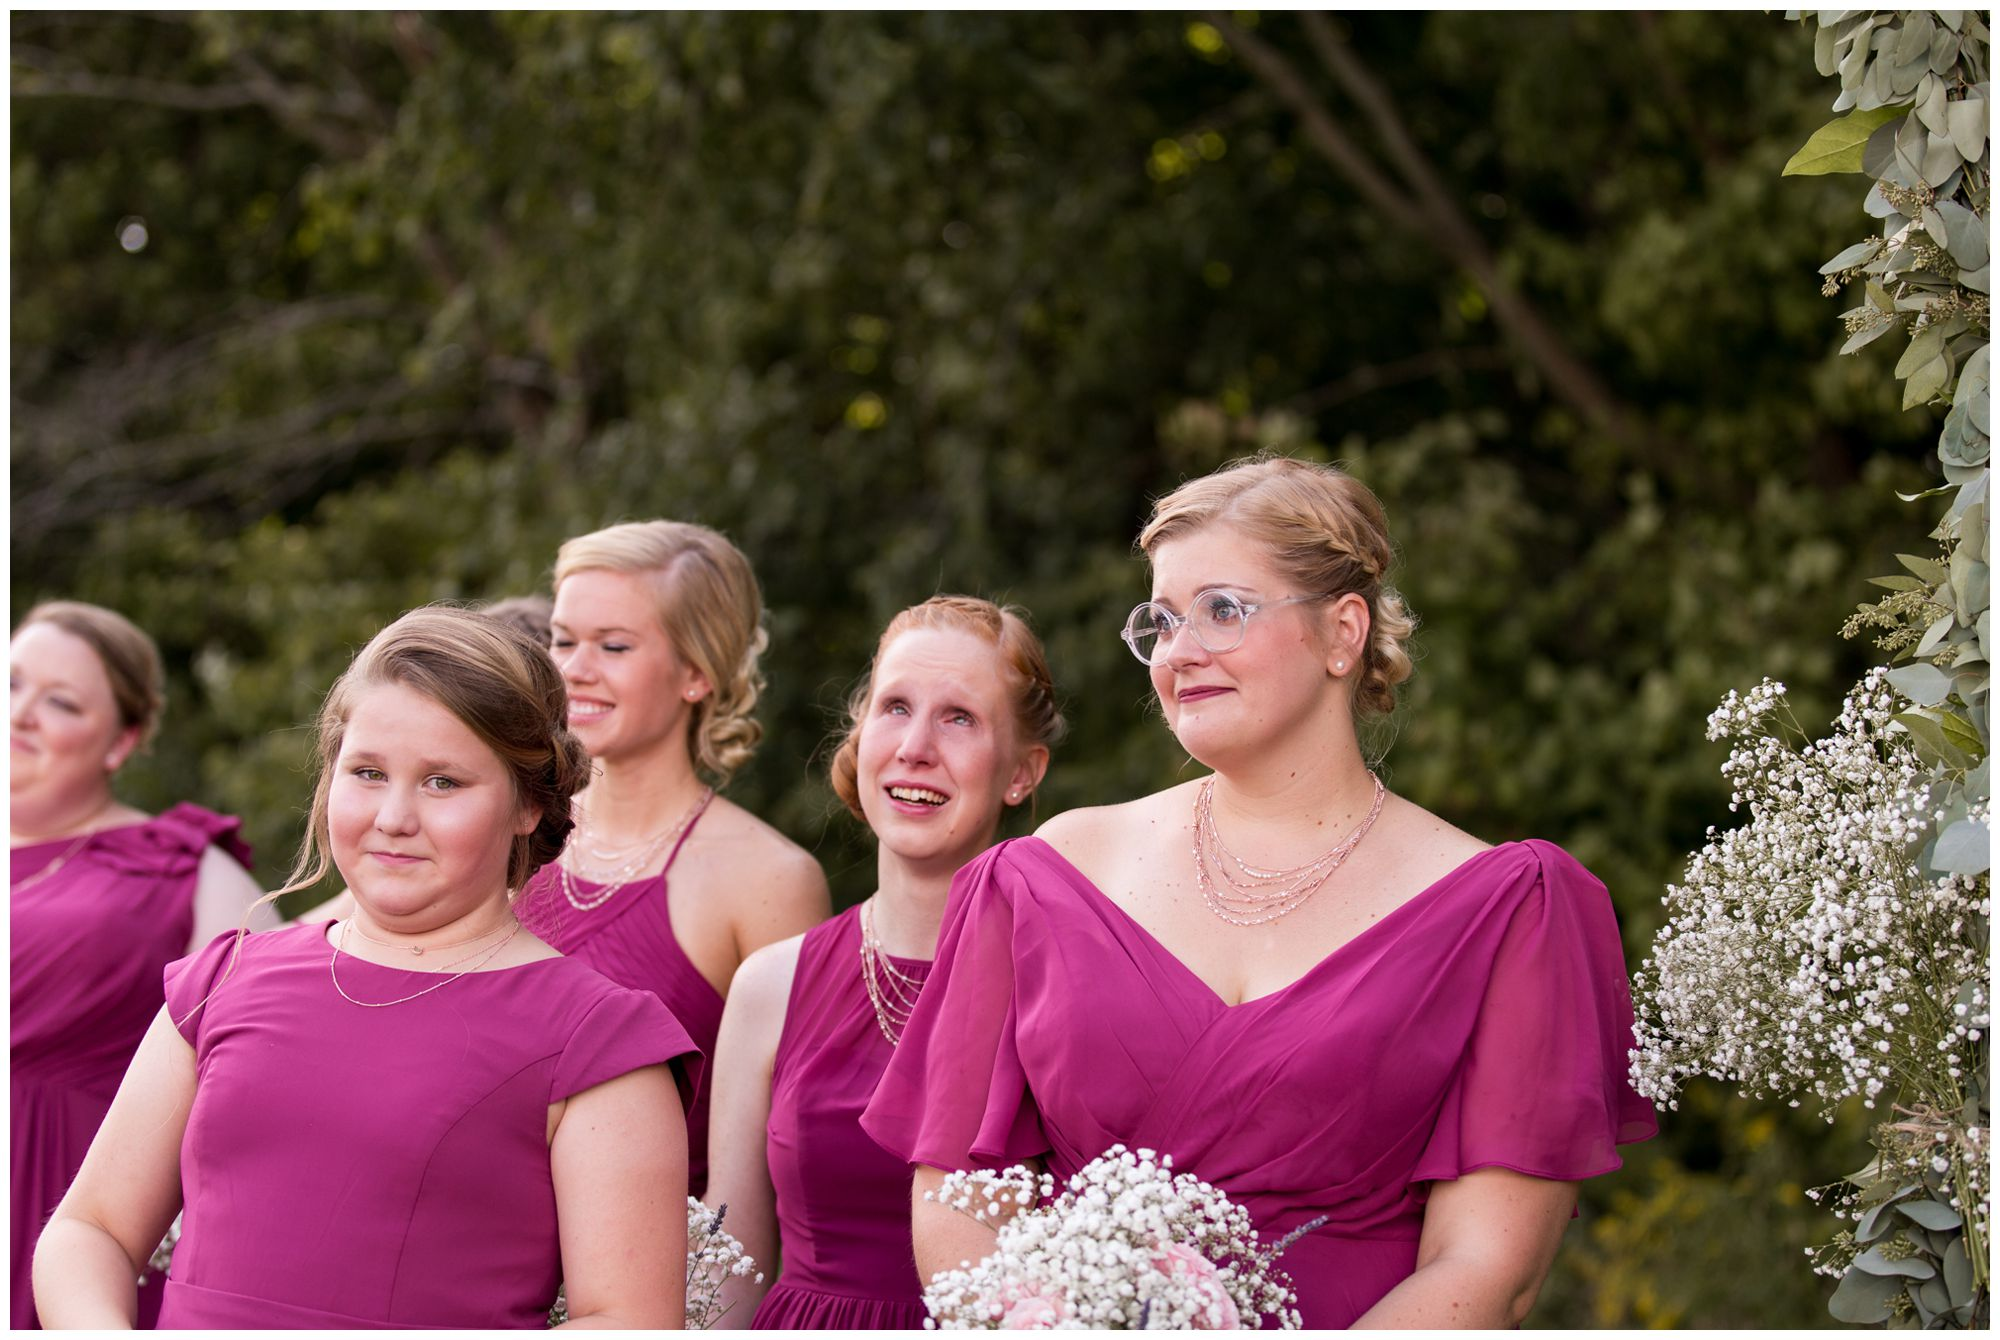 maid of honor, flower girl, and bridesmaids look on at bride Tabea as she comes down the aisle during Crossroads Community Church wedding